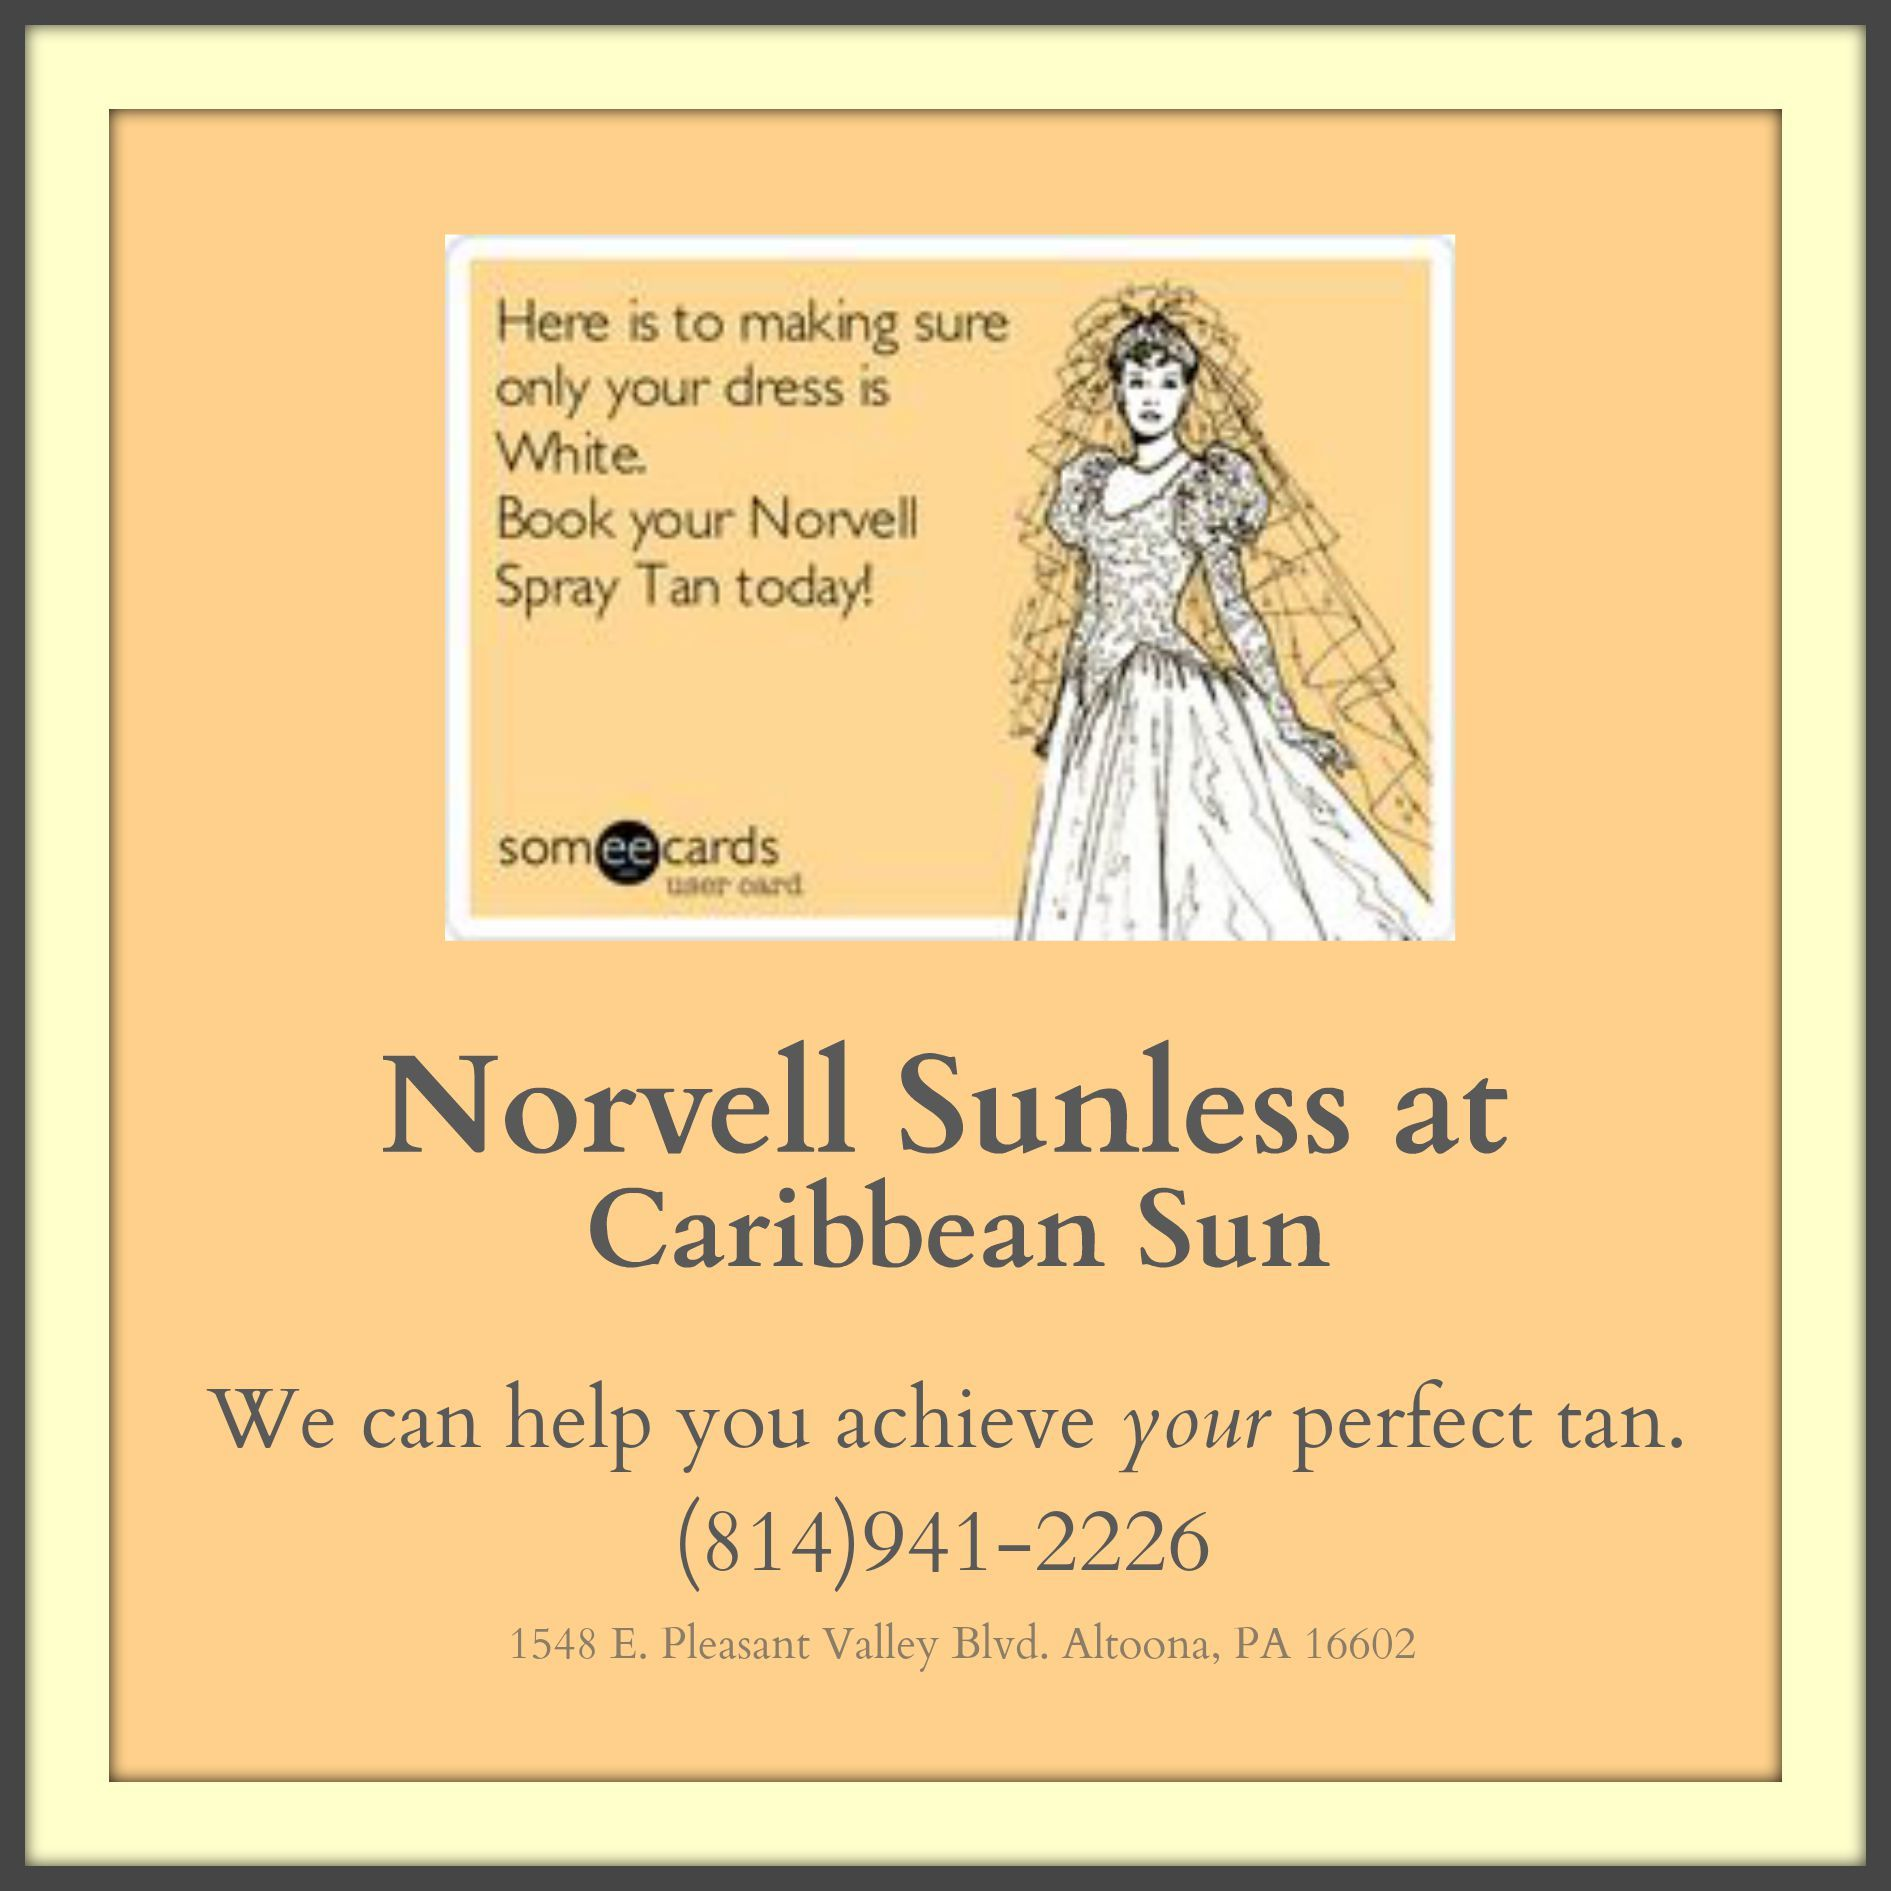 At Caribbean Sun Tan Spa Altoona Pa Norvell Auto Revolution Every Tuesday Until January Take 10 Spray Tan Single Sessions Norvell Spray Tan Norvell